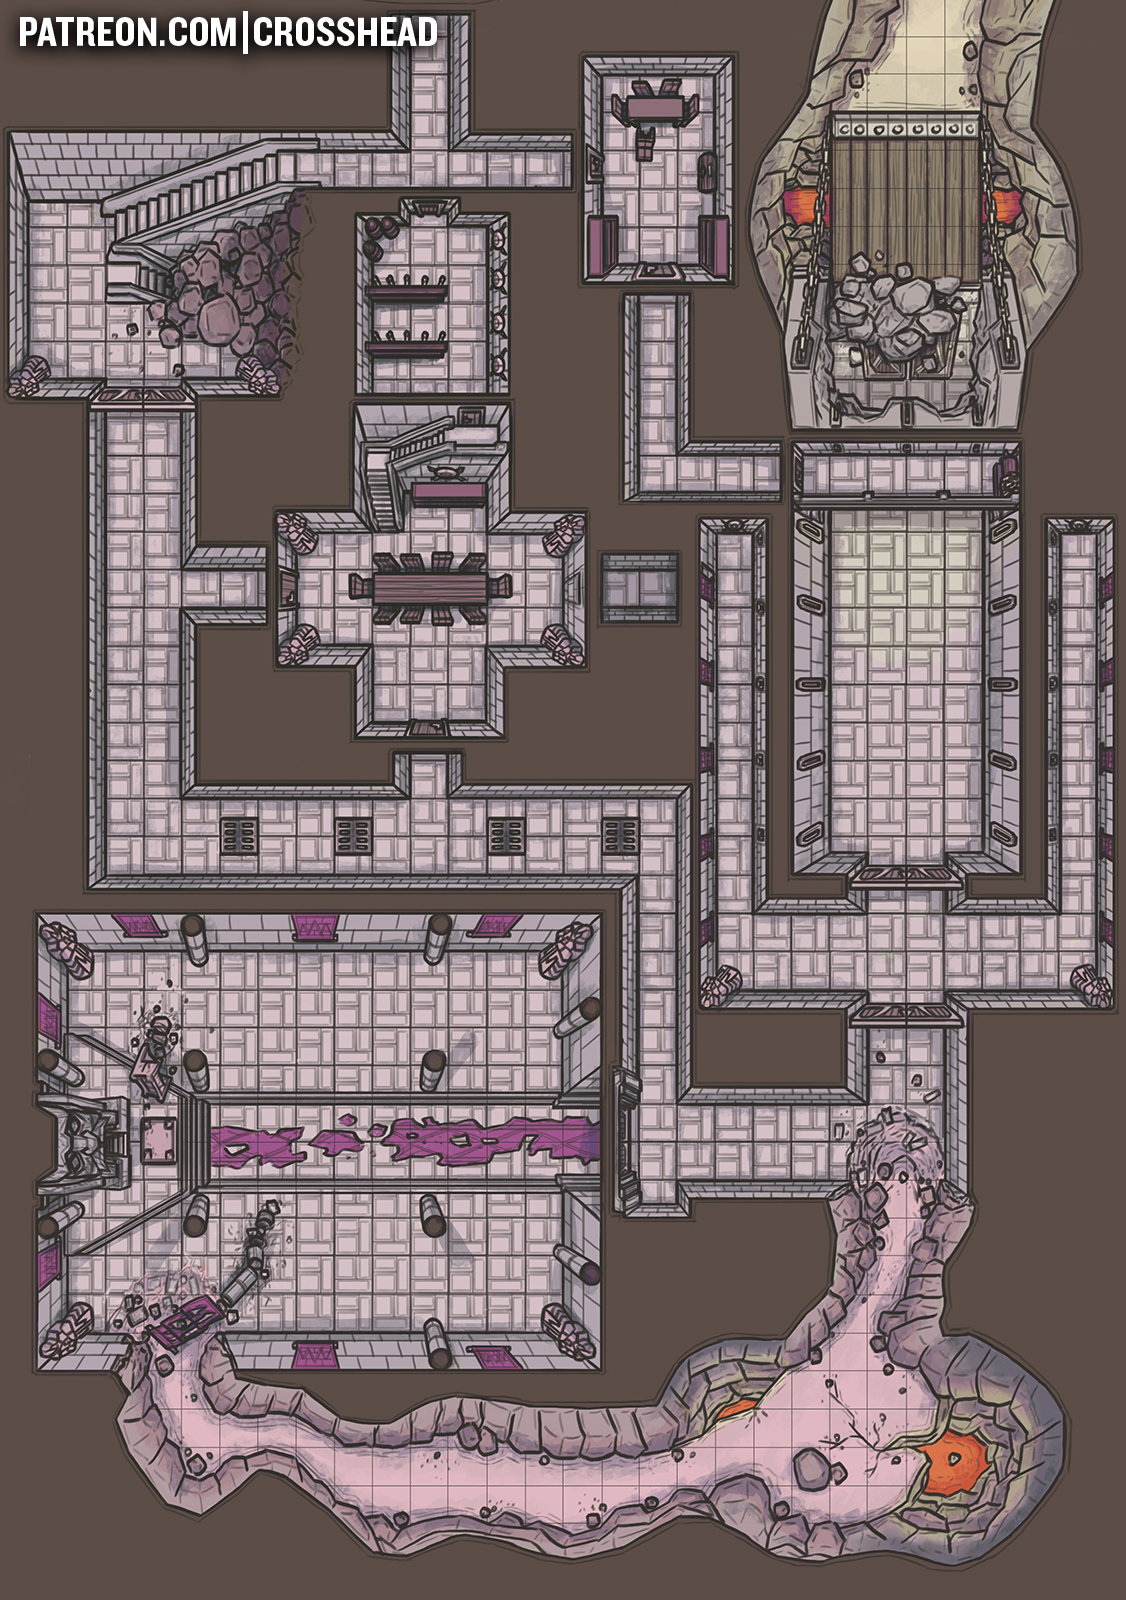 MOUNTAIN PACK DWARVEN FORTRESS DUNGEON BATTLEMAP D&D LQ.jpg